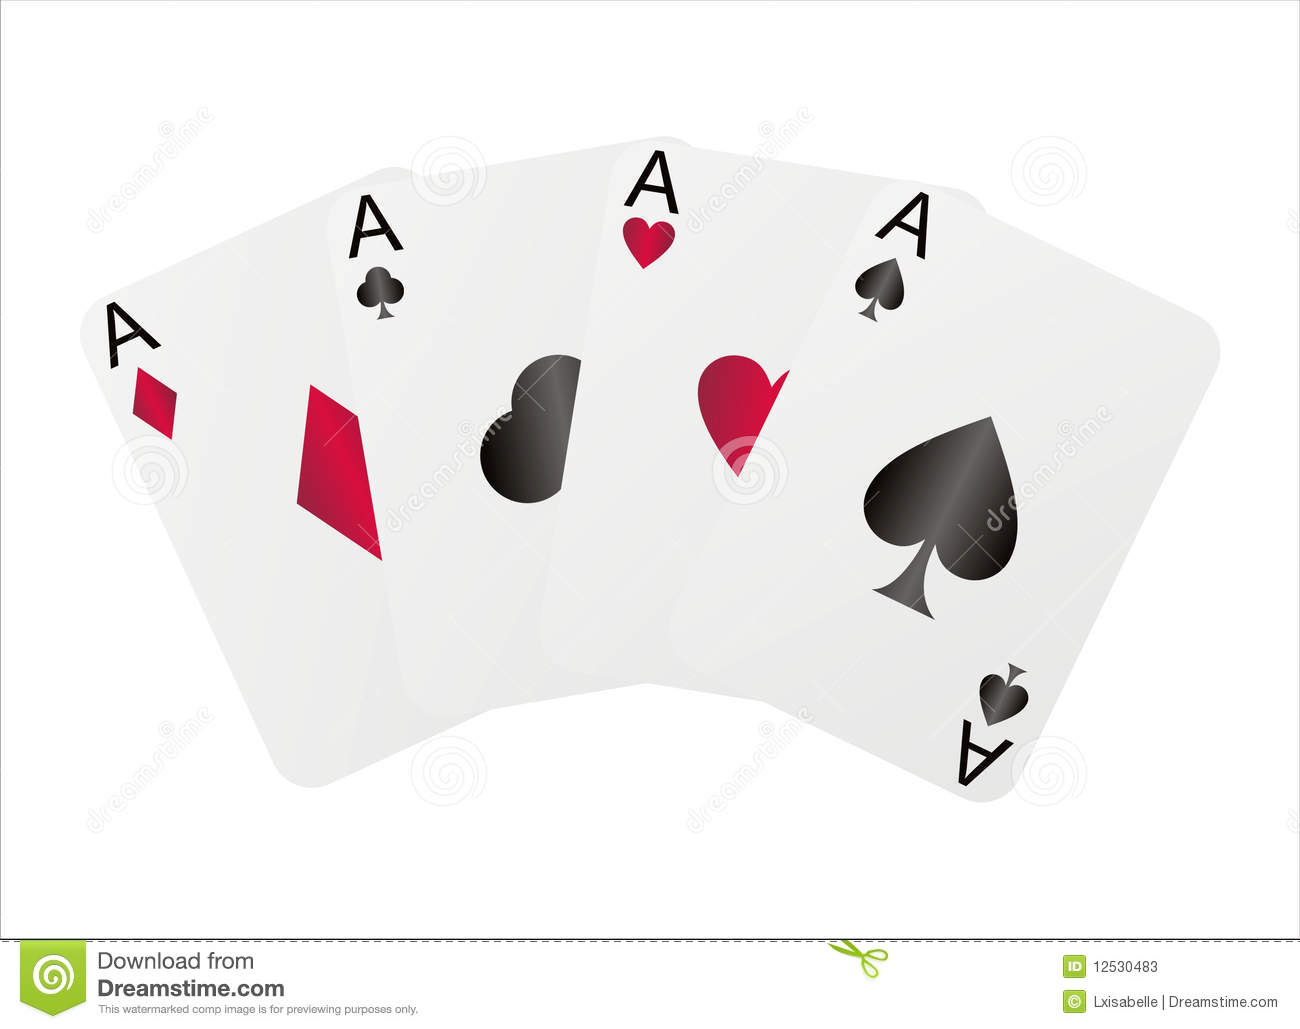 Four Aces Stock Photos - Image: 12530483